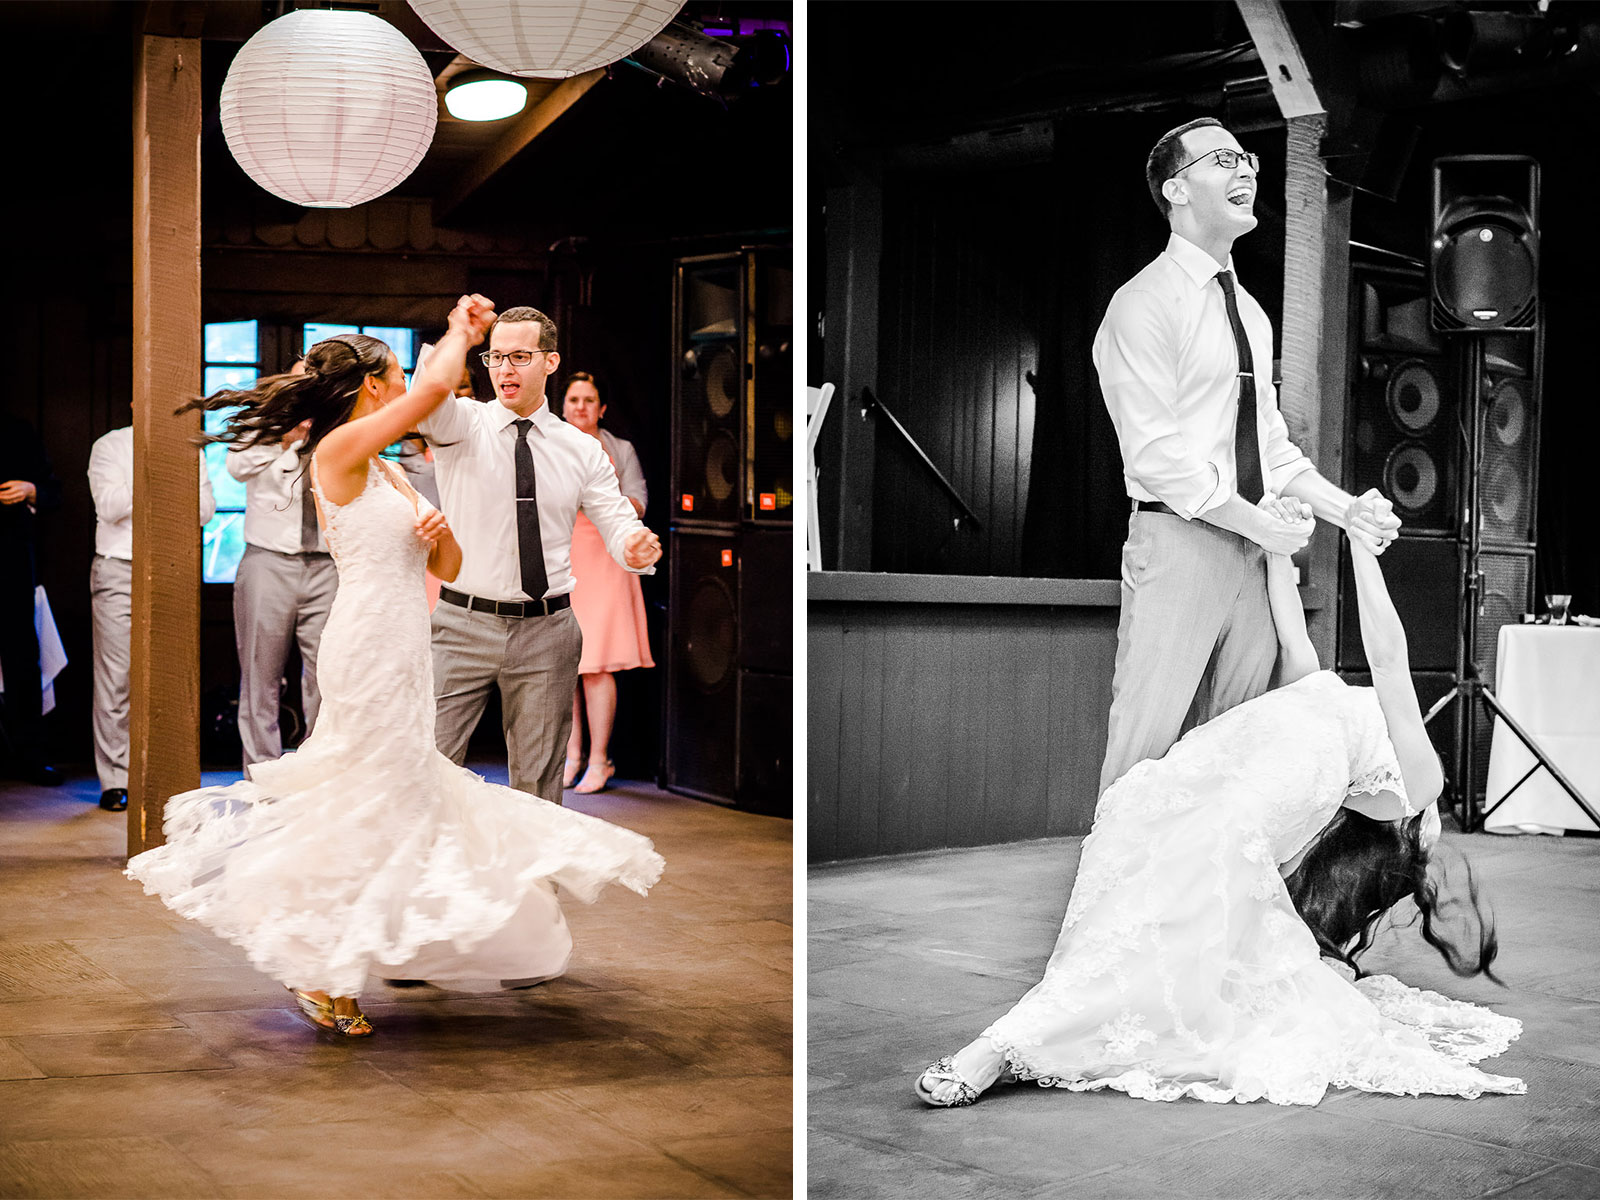 Eric_and_Christy_Photography_Blog_Wedding_Anne_Michael-77-78